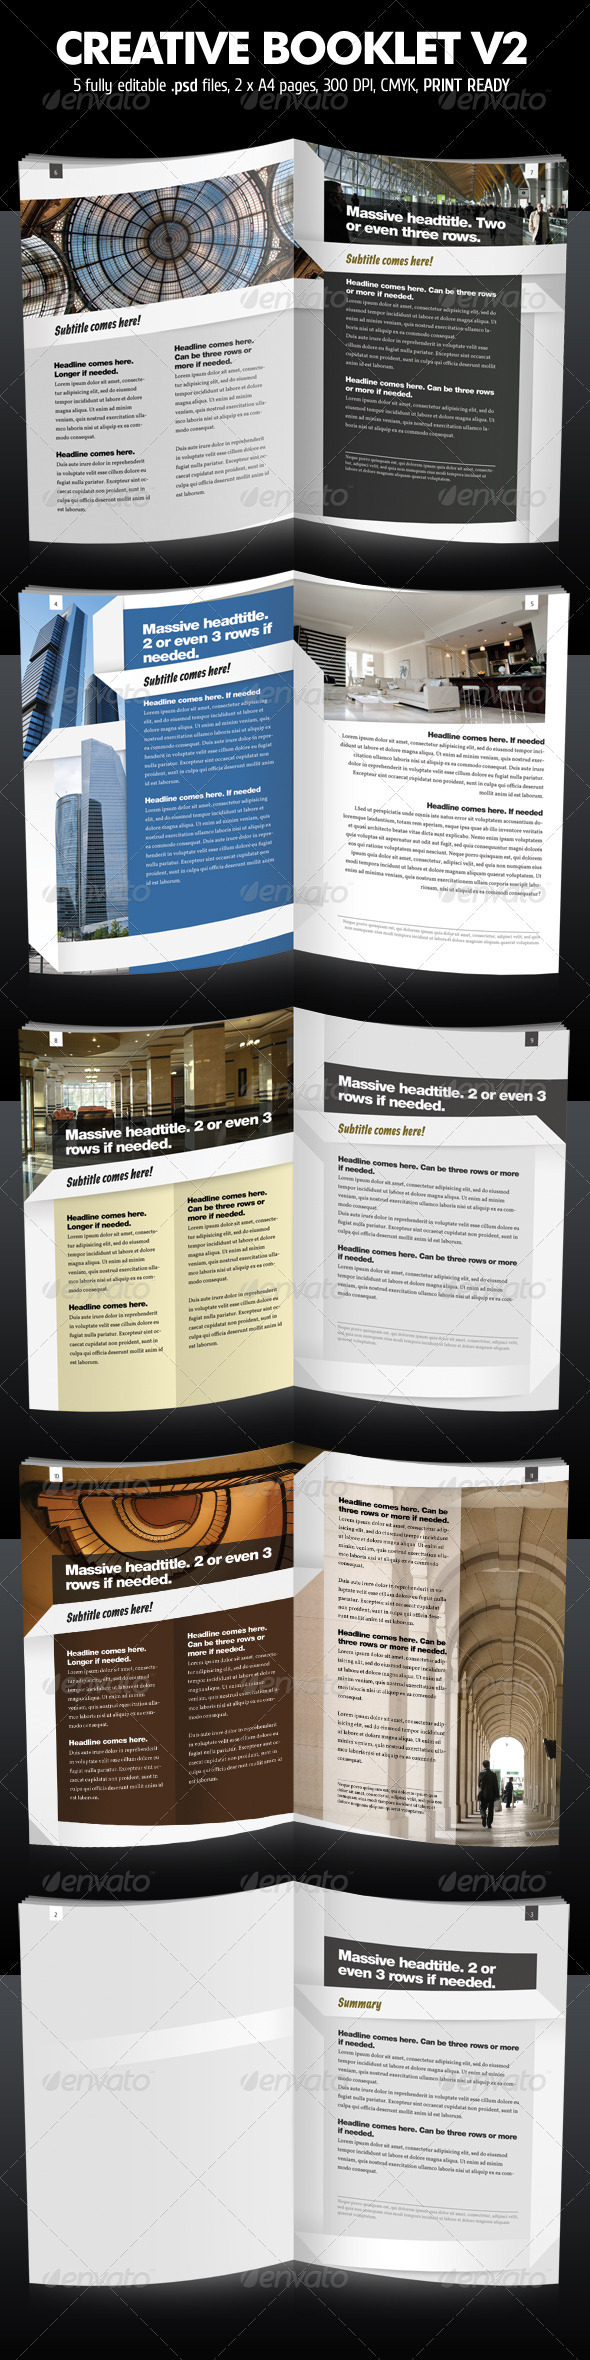 Creative Booklet / Brochure V2 - Corporate Brochures